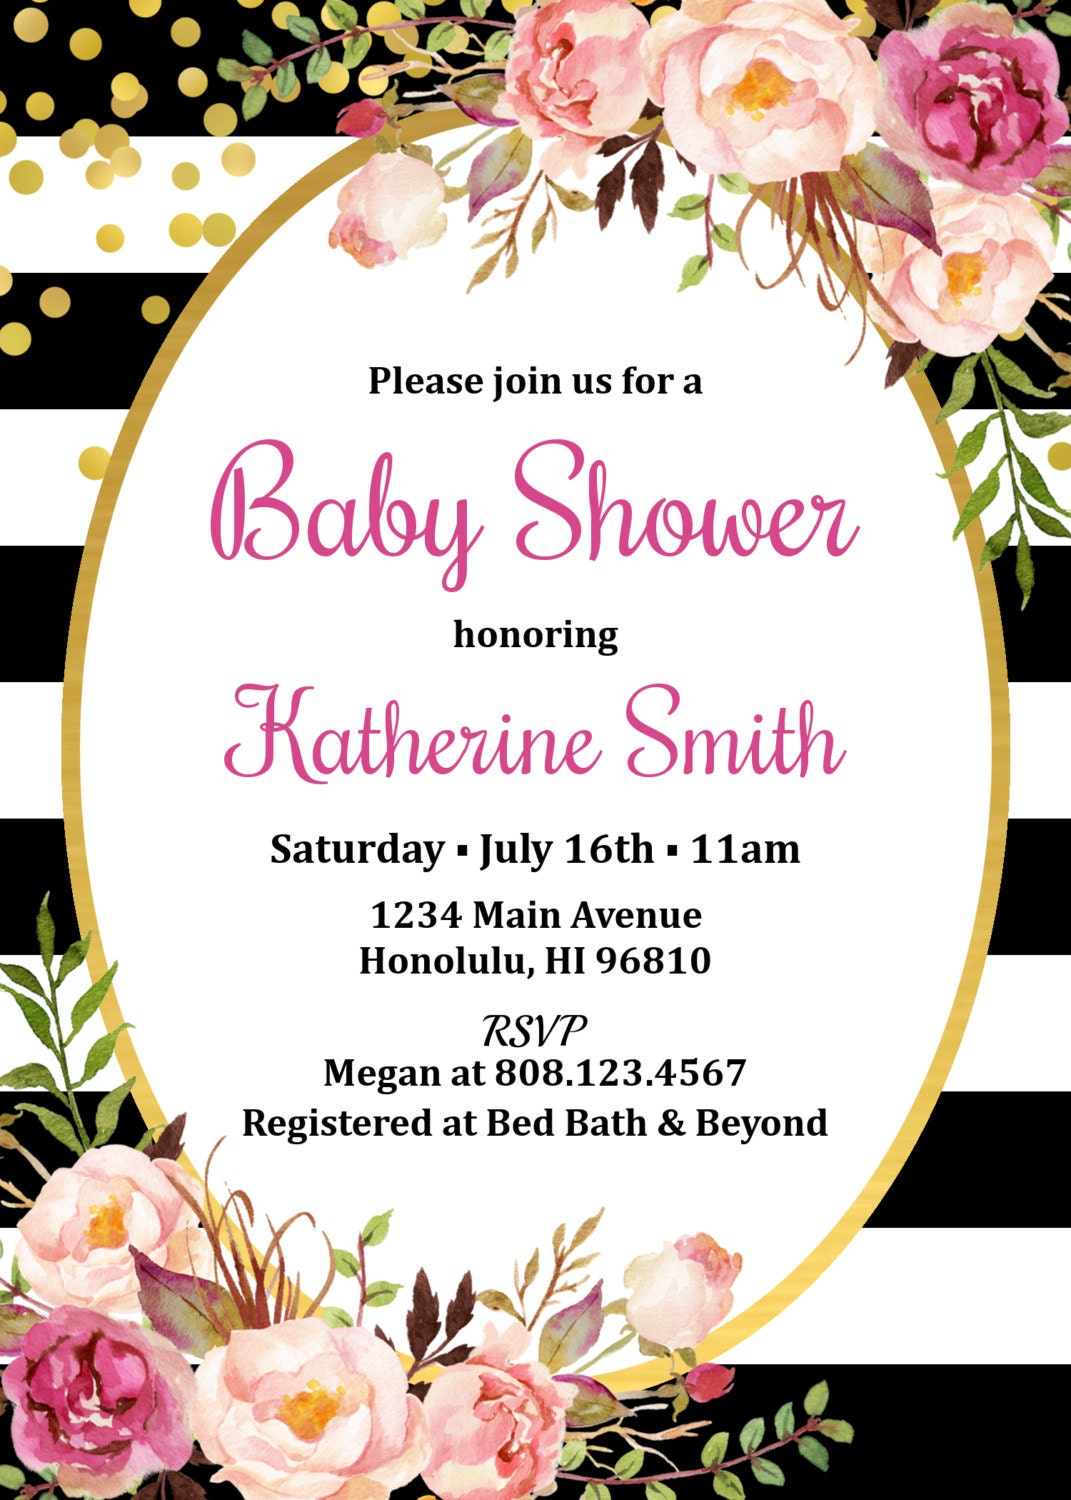 Floral Baby Shower Invitation, Black & White Baby Shower Invitation ...